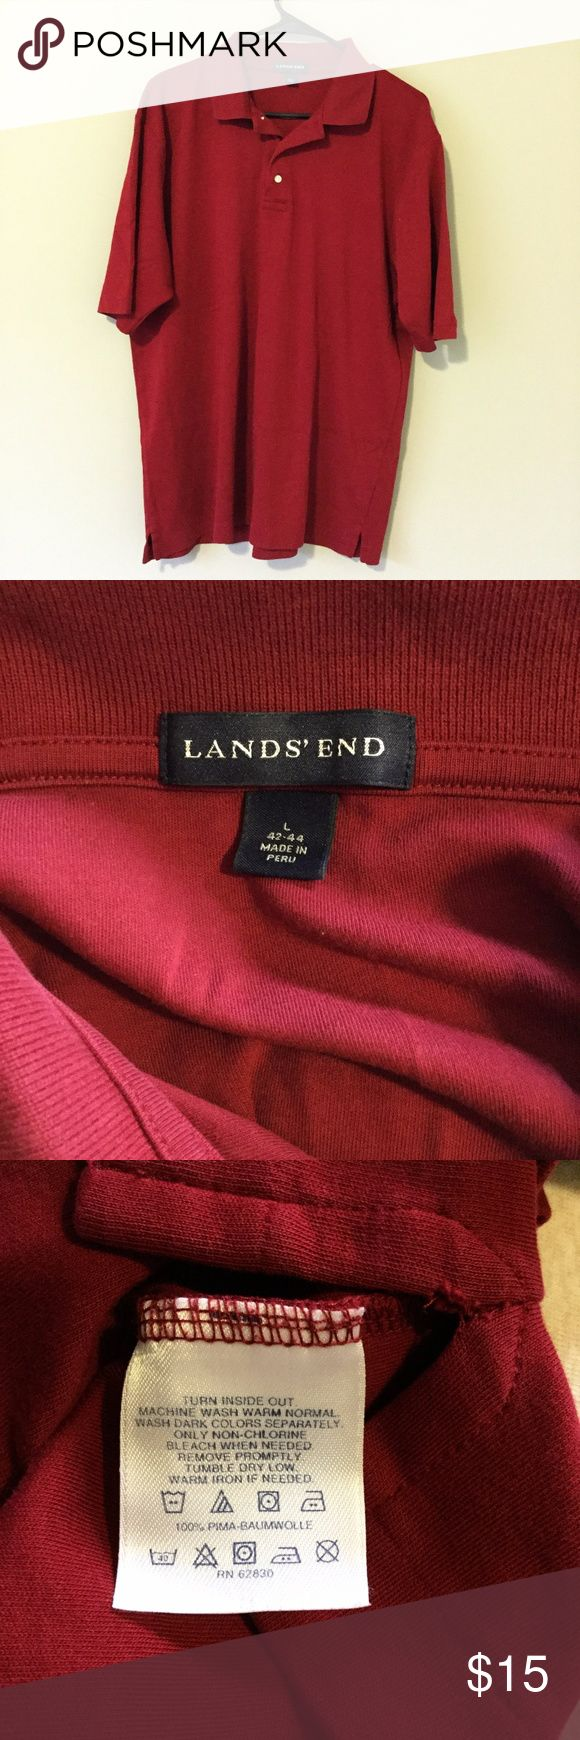 Lands' End Men Maroon Short Sleeve Polo Shirt Good used condition.  No rips, tears or stains.  See pictures for details.  See description for measurements.  100% Pima Baumwolle  Shoulder - 19 inches Sleeve - 11 inches Bust - 22 inches Length - 29 inches Lands' End Shirts